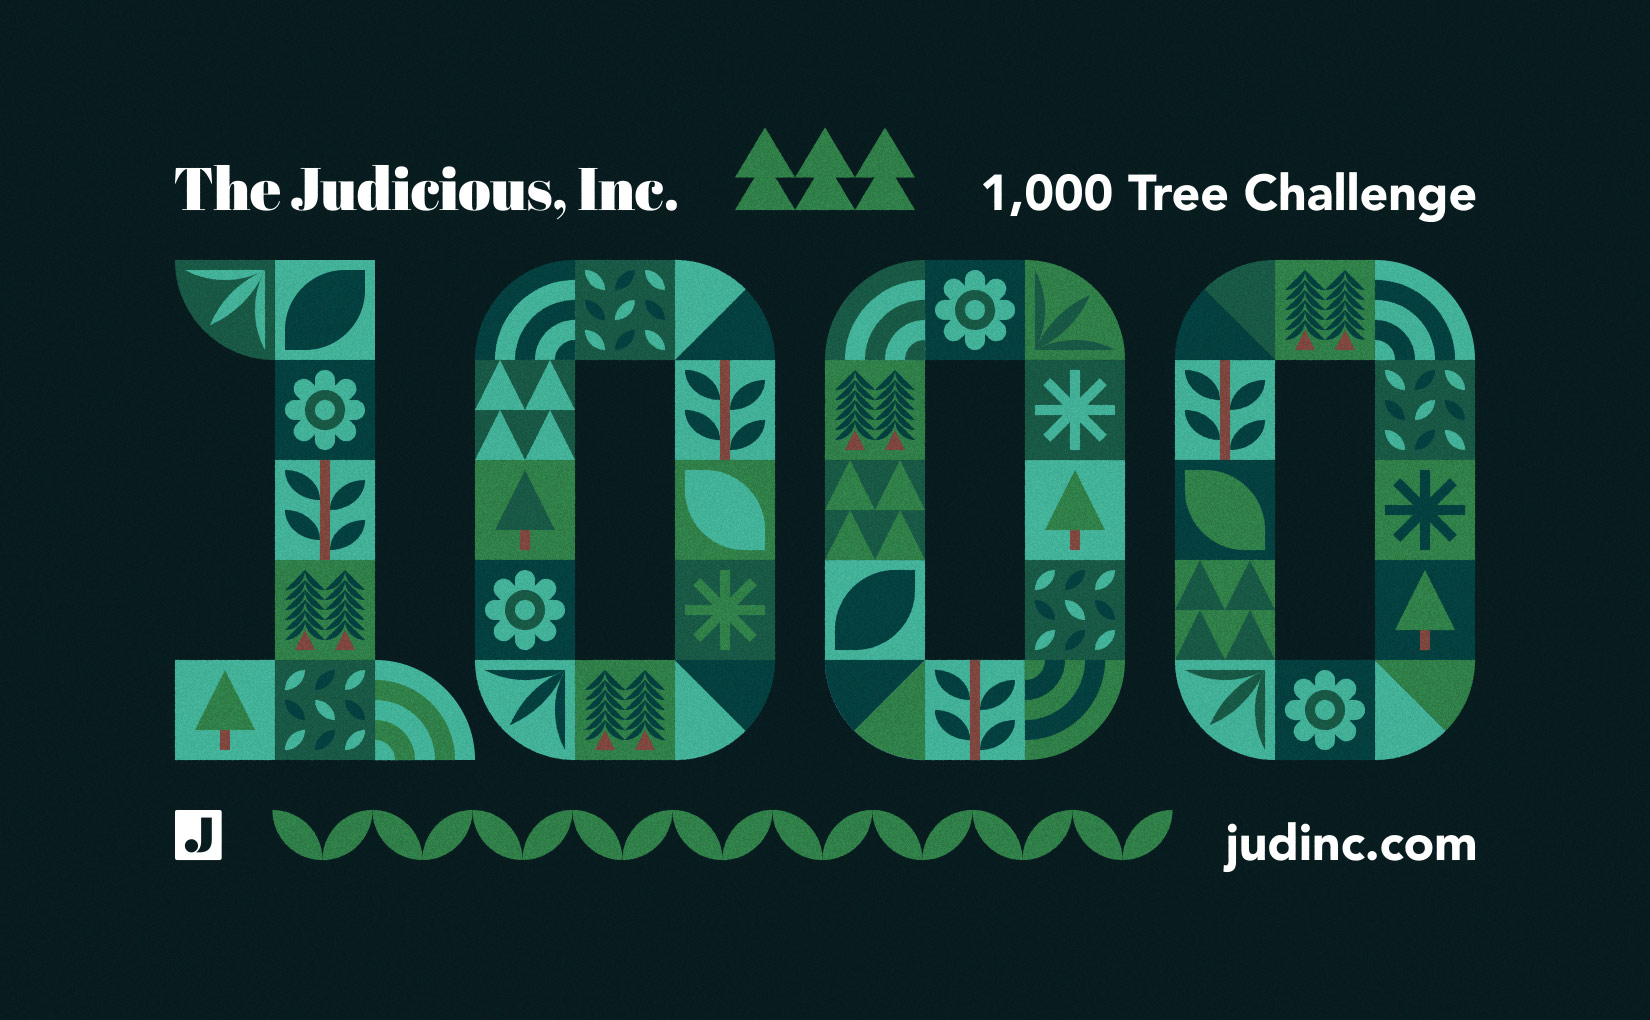 The Judicious, Inc. 1,000 Tree Challenge